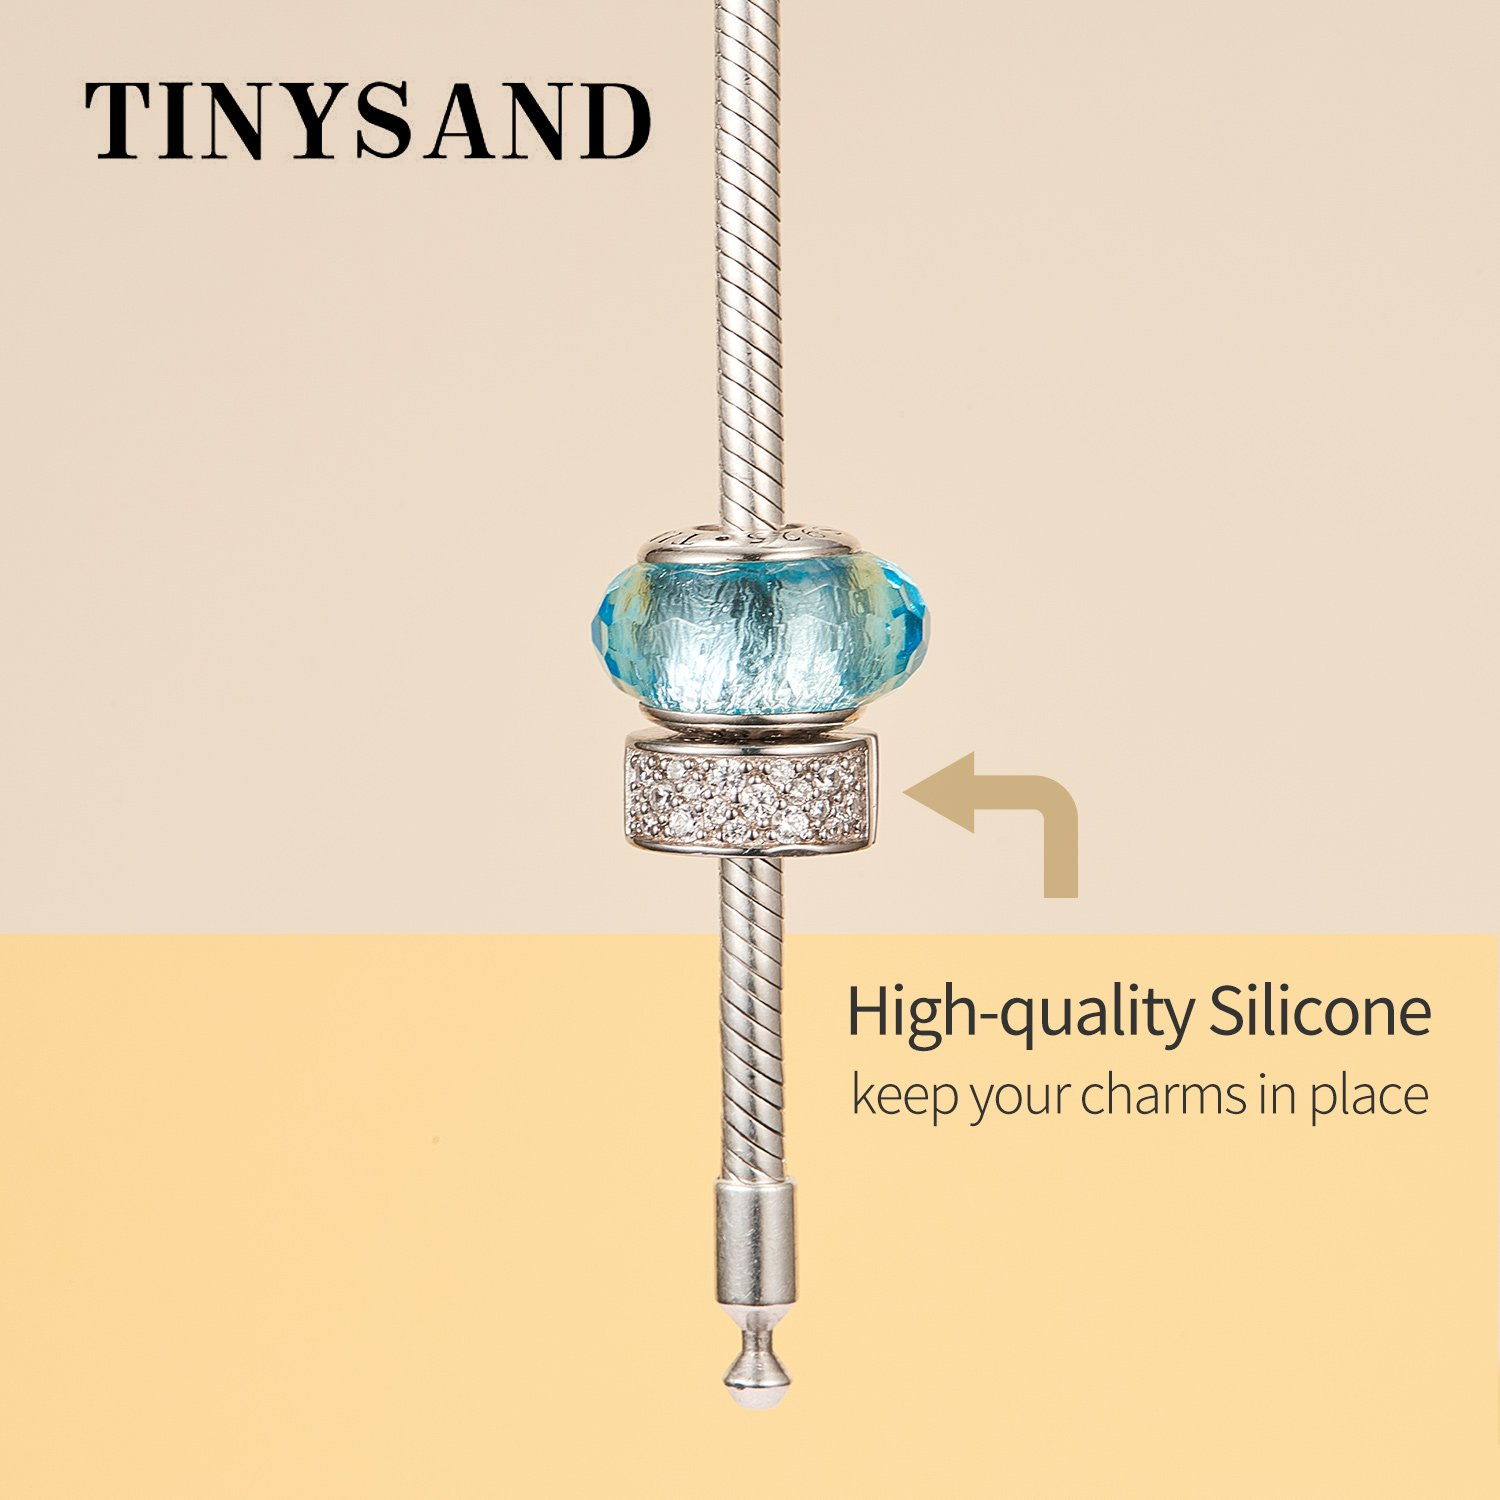 TINYSAND 925 Sterling Silver Dazzling CZ Clip Lock Stopper Spacers Charms Beads Fits European Snake Bracelet Bangle Unique Jewelry for Girls Women by TINYSAND (Image #5)